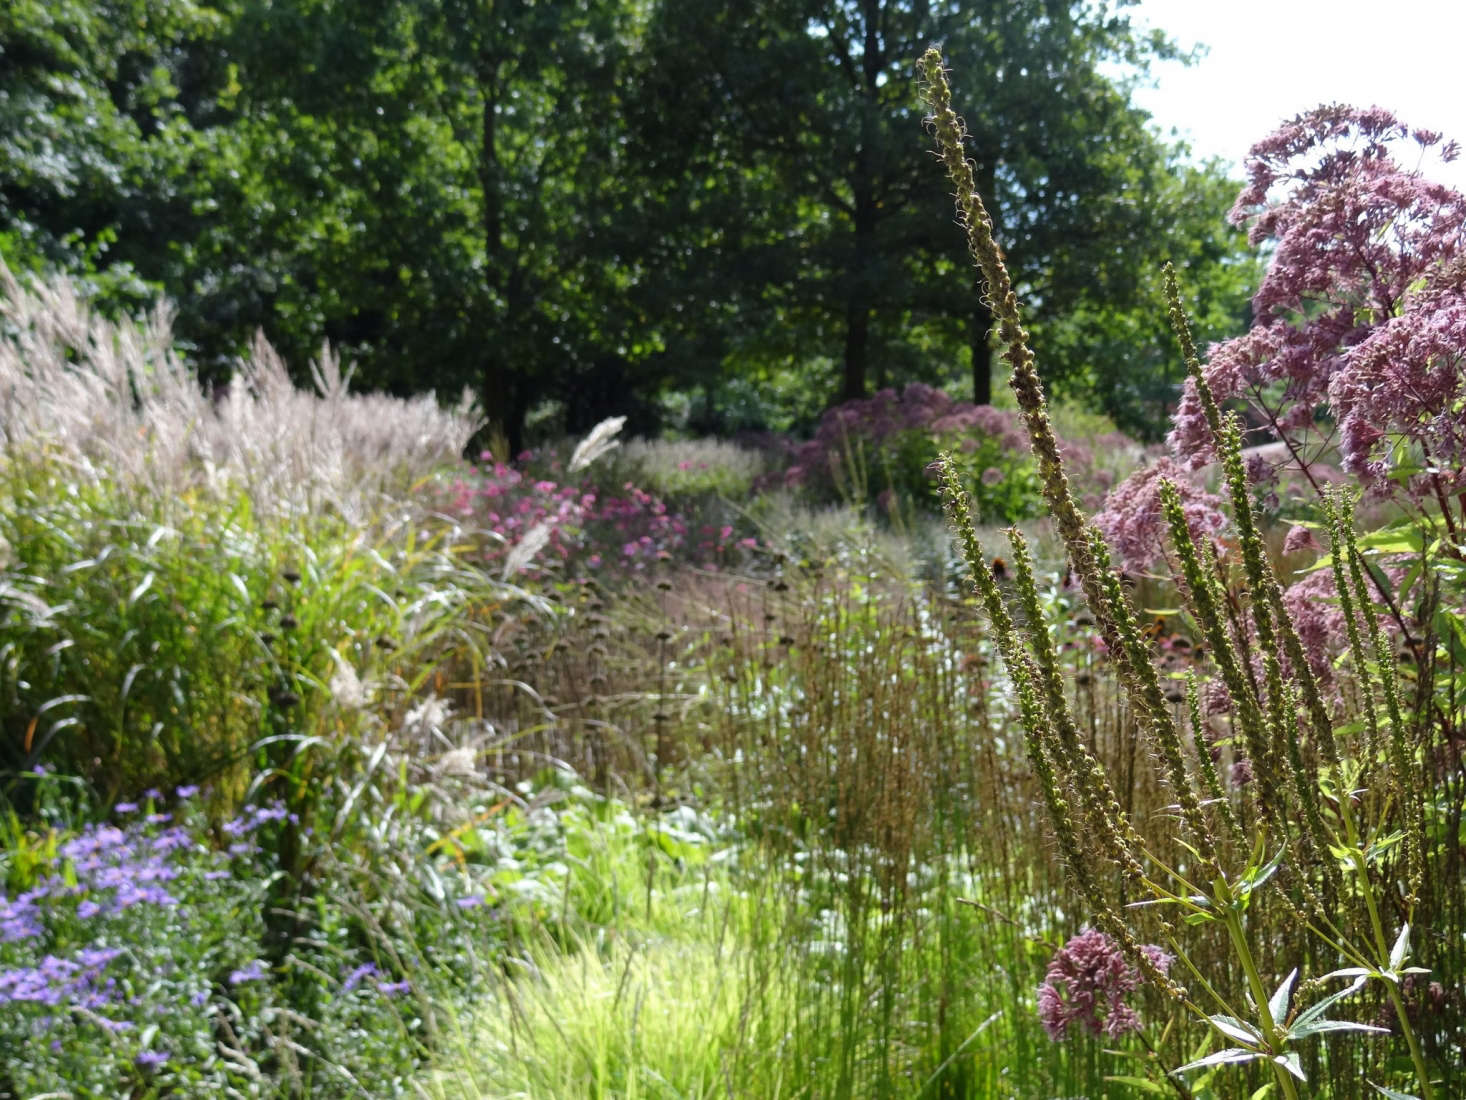 In Hamm, Germany,Maximilianpark was formerly a coal mine, now transformed into gardens, play spaces, and a sanctuary for pollinators. Oudolf designed this sweep of wildflower meadow. Photograph by Esther Westerveld via Flickr.